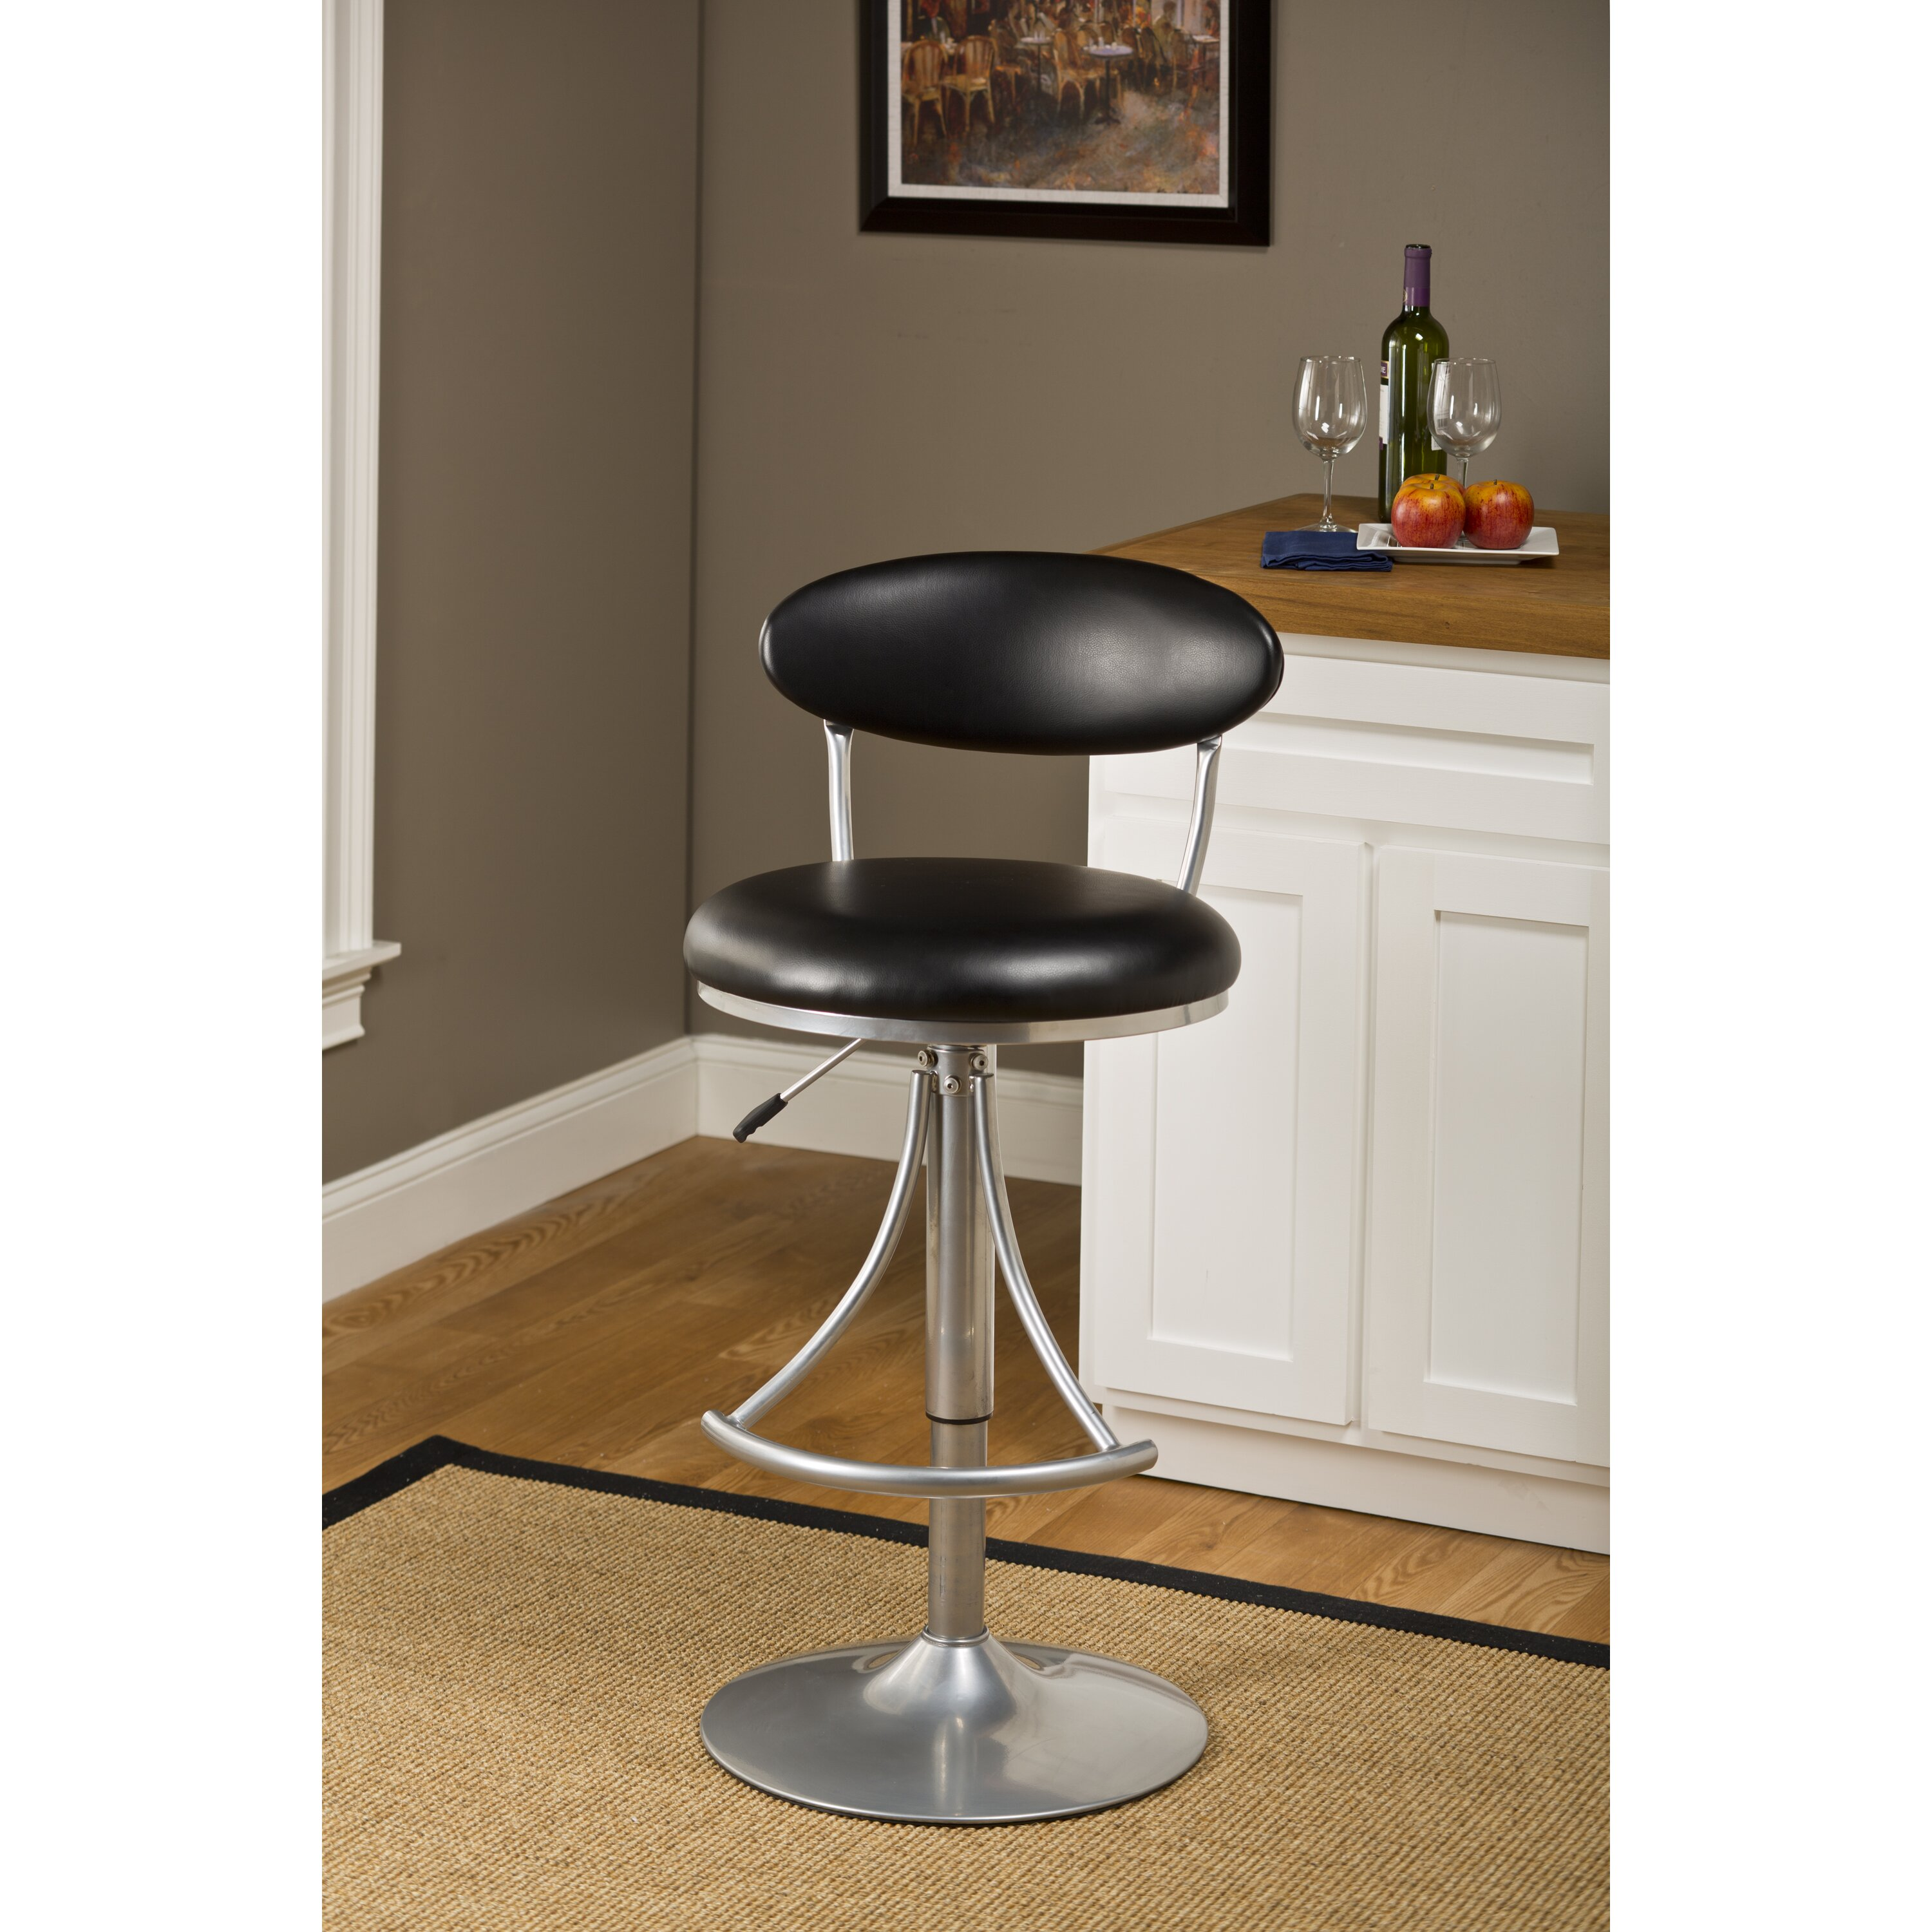 Elon 24 Quot Adjustable Swivel Bar Stool With Cushion Wayfair Ca